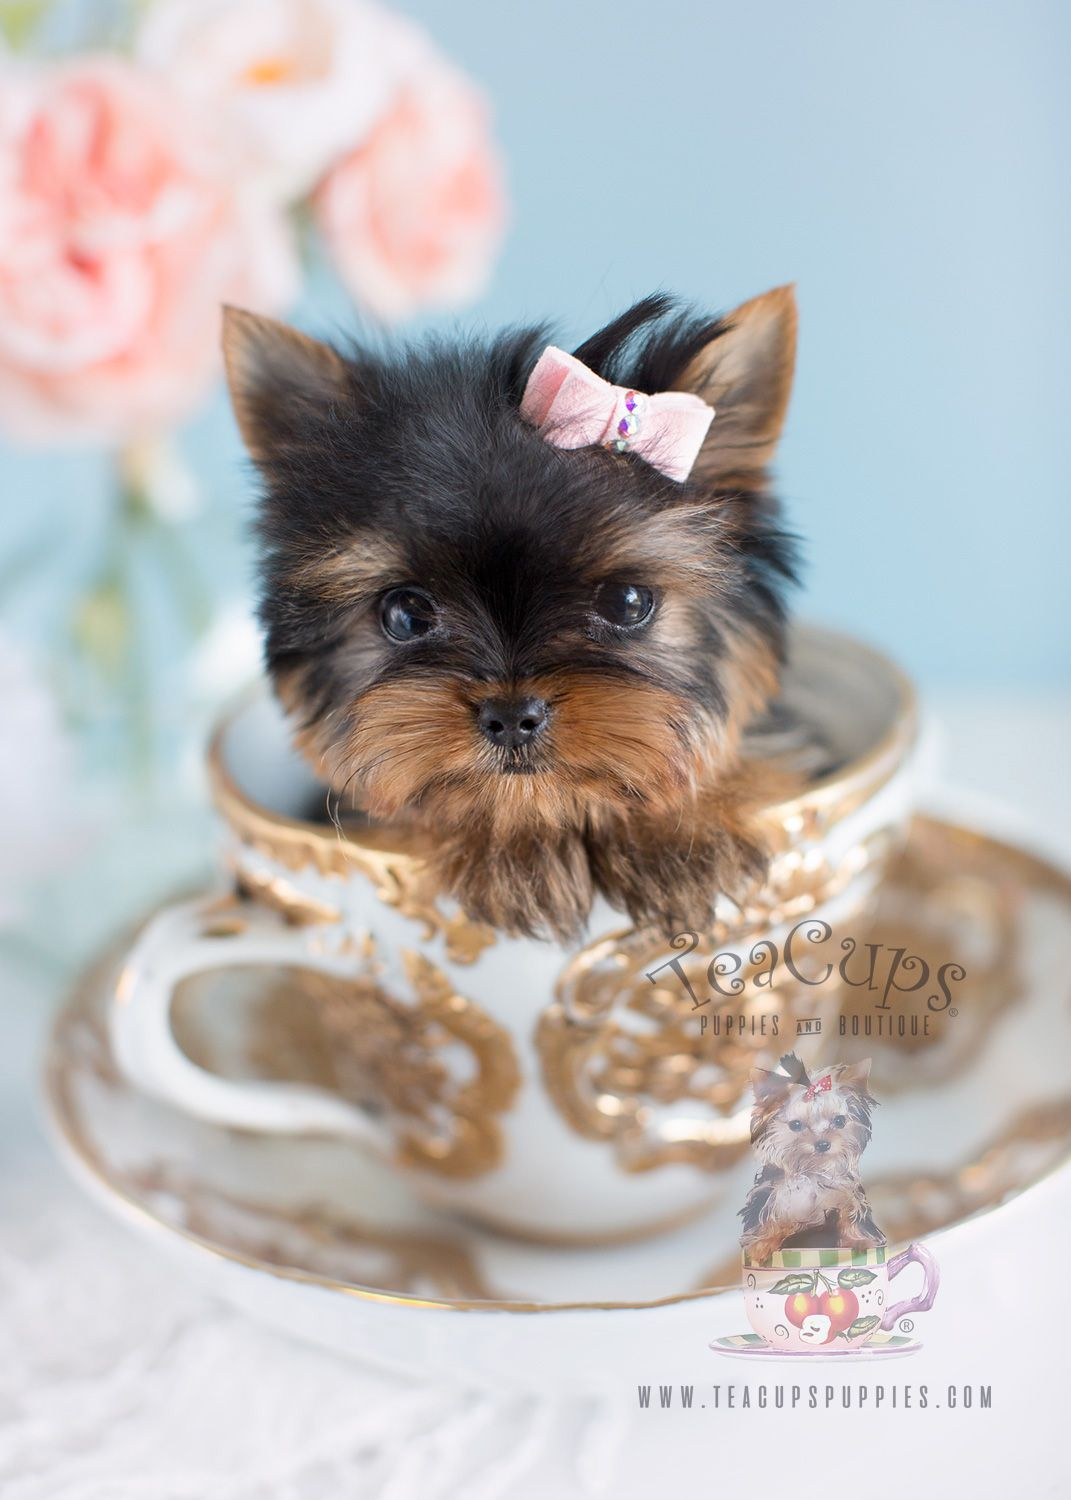 Treat Your Pet Right With These Dog Care Tips Teacup Yorkie Puppy Yorkie Puppy Puppies